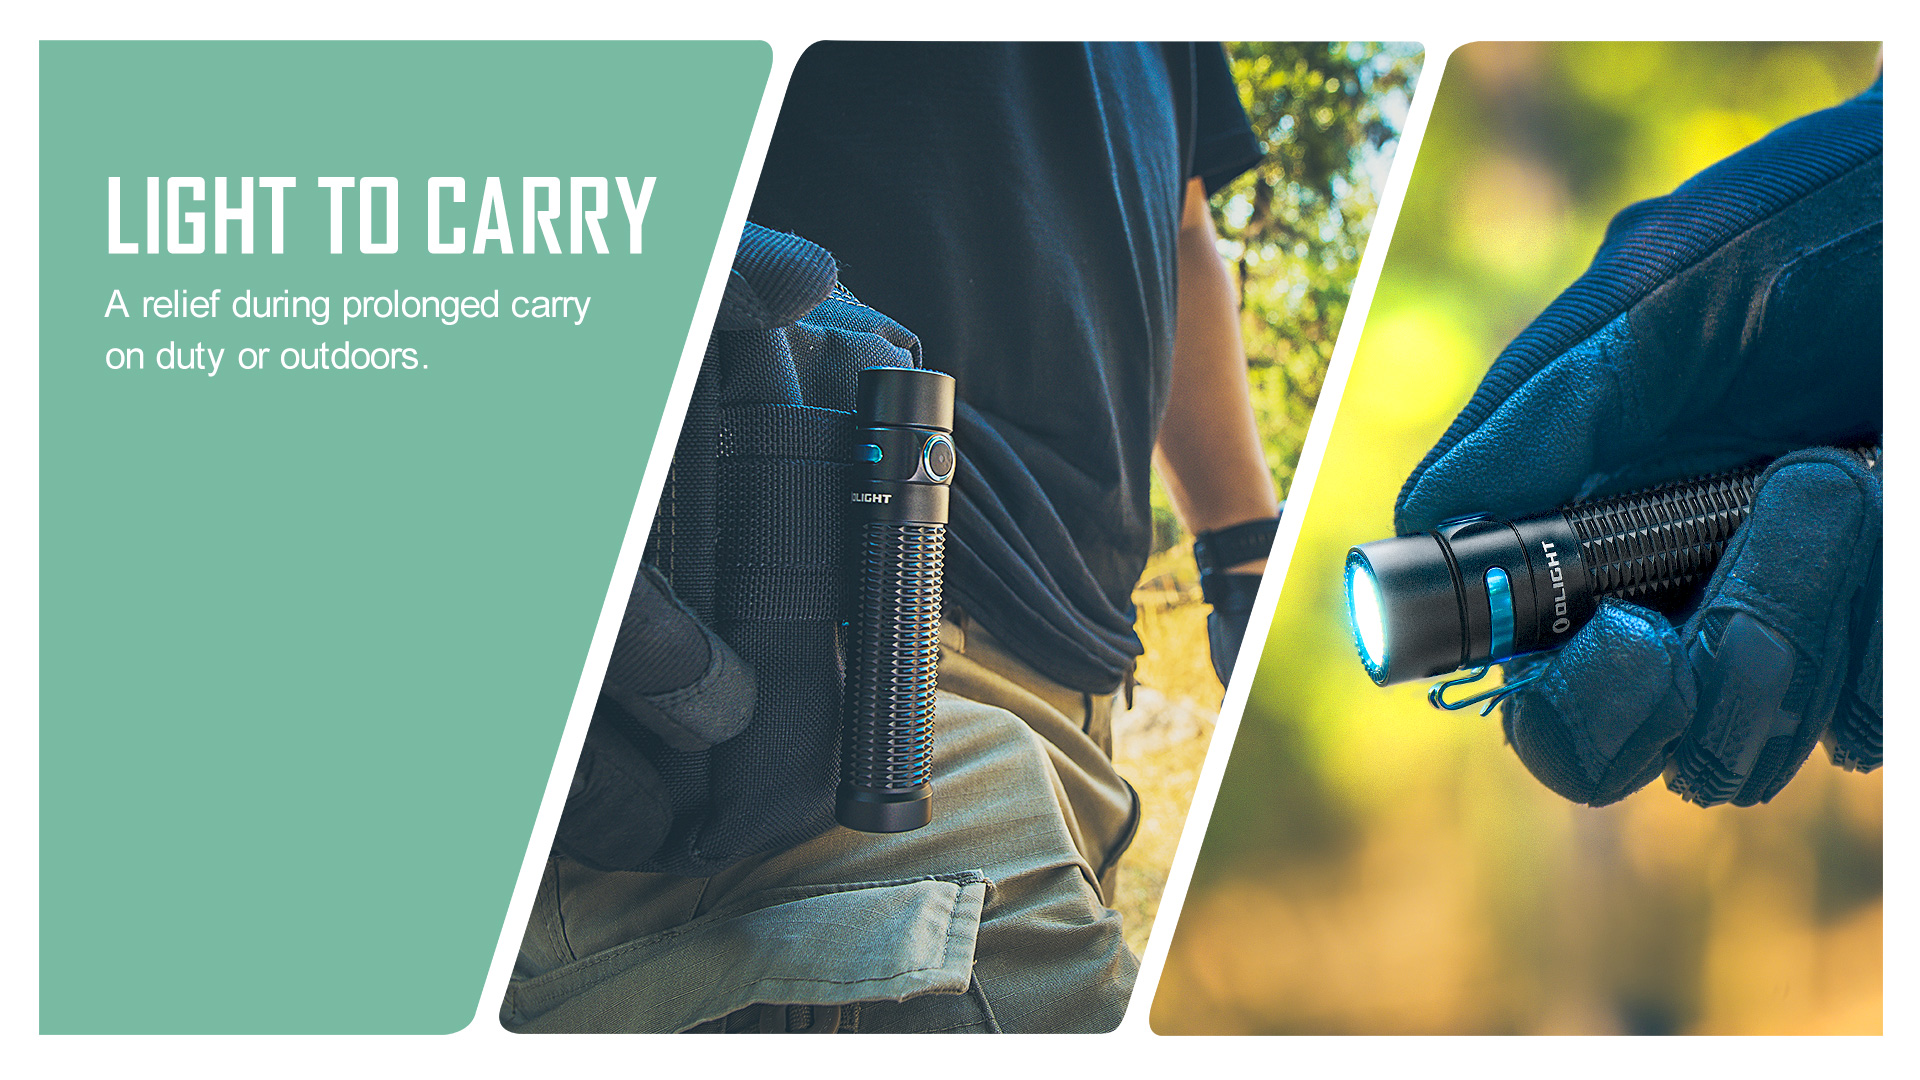 Light to Carry small tactical flashlight